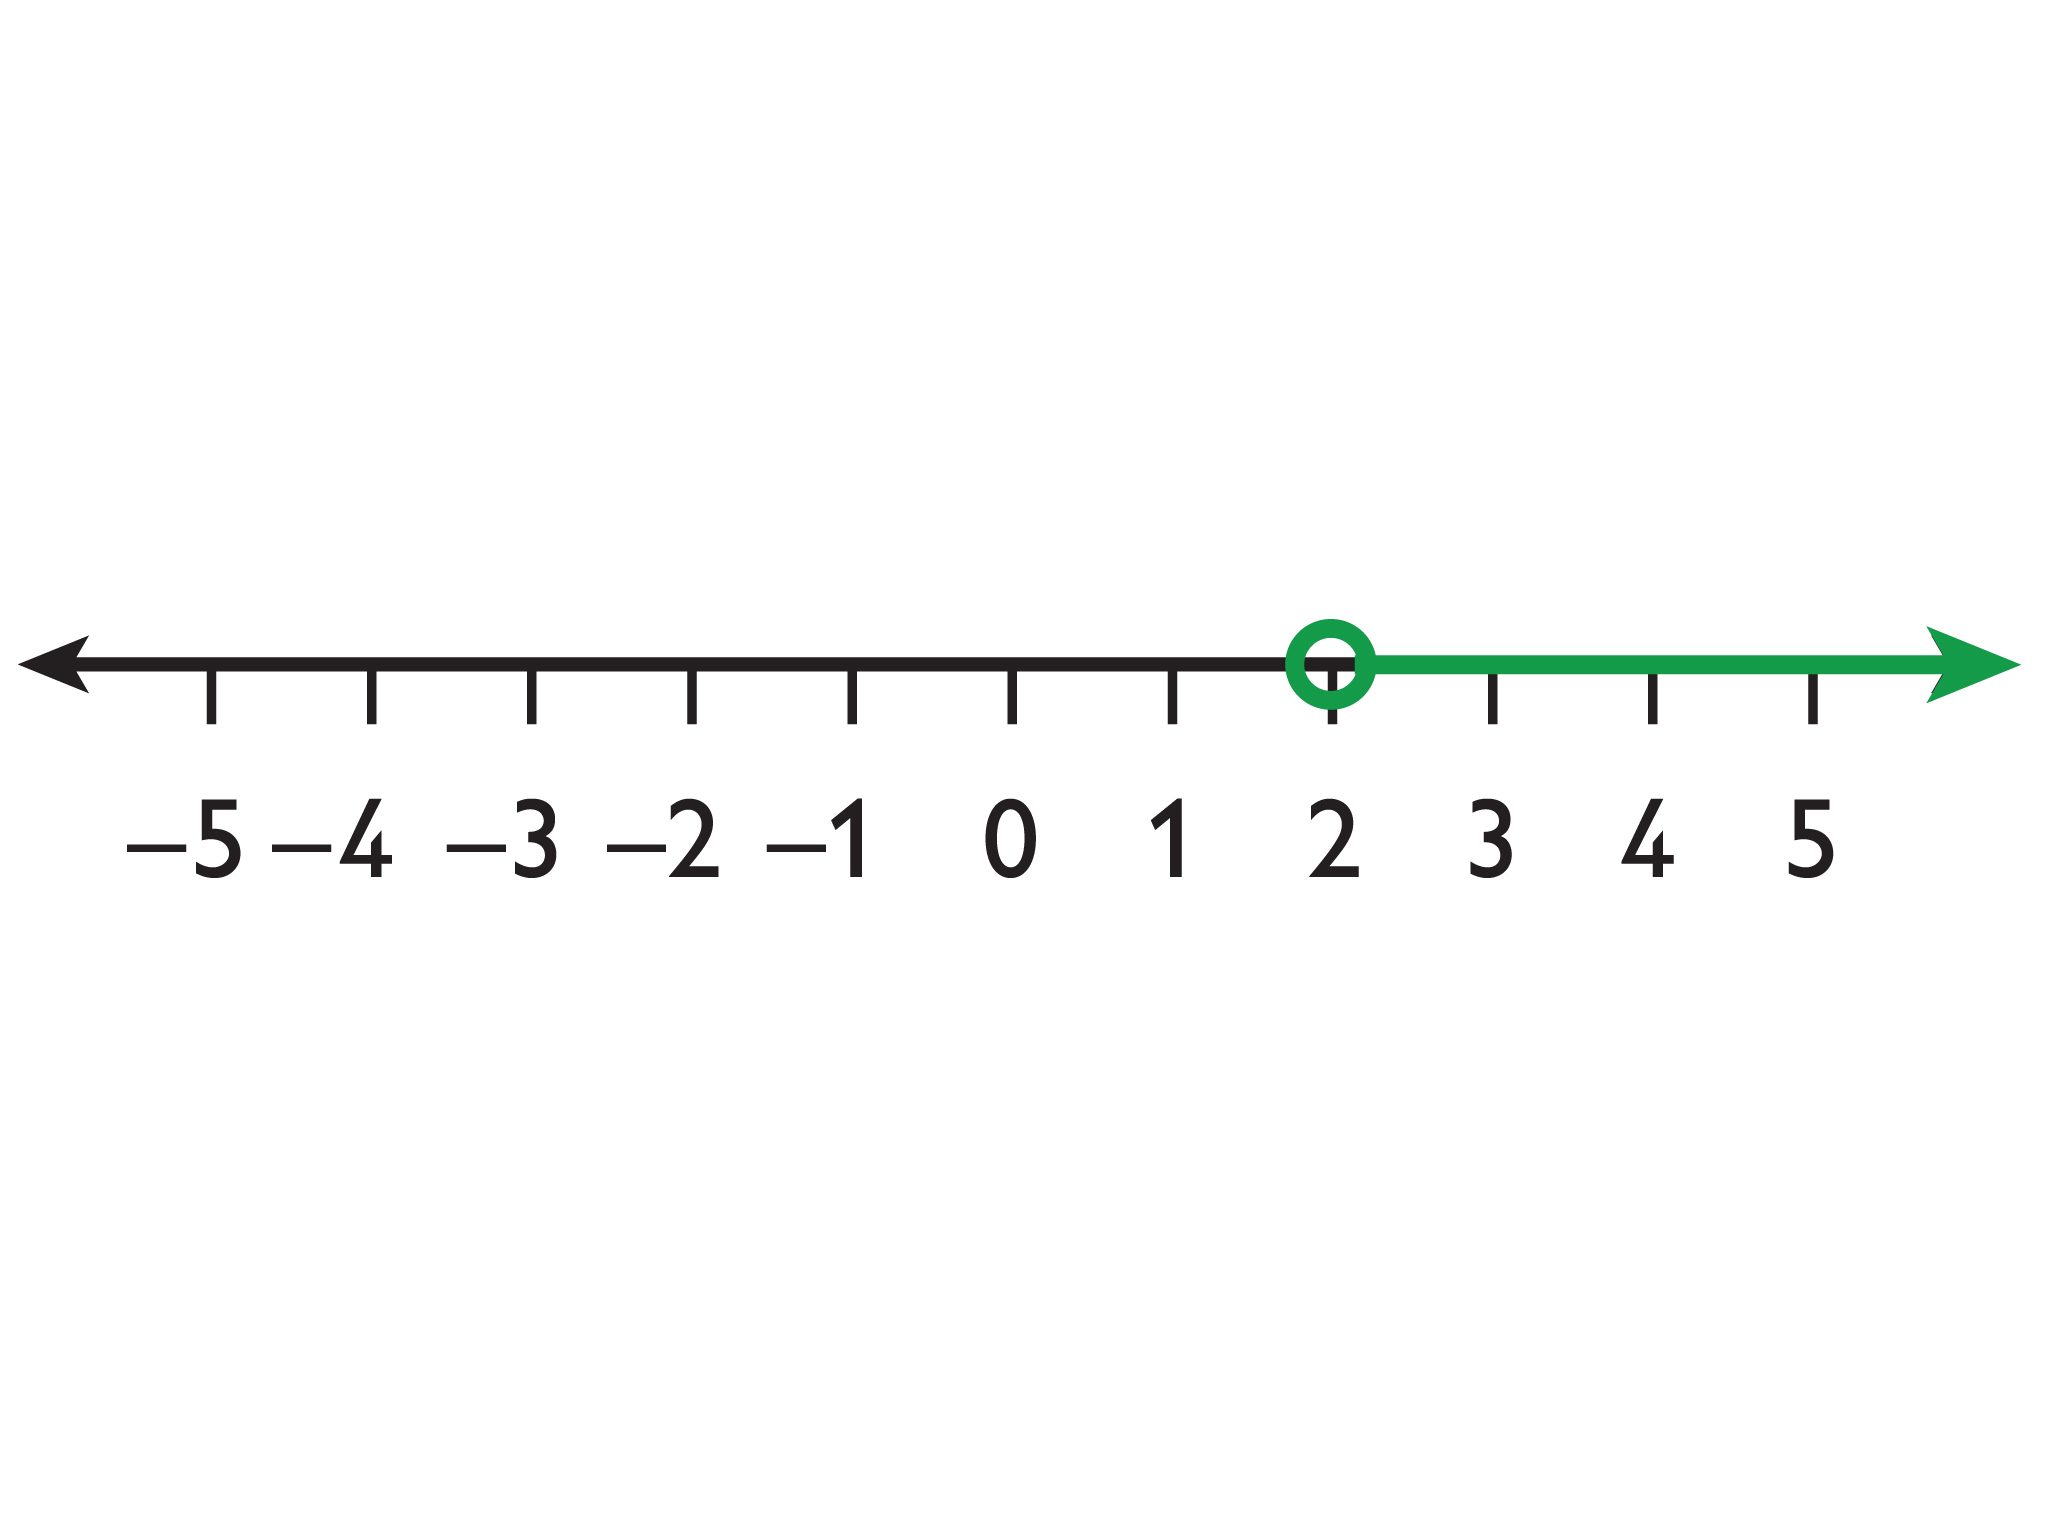 Math grade 6 equations and inequalities lesson 10 oer commons the solutions to x a are represented on the number line with an arrow pointing to the left from a closed circle at a buycottarizona